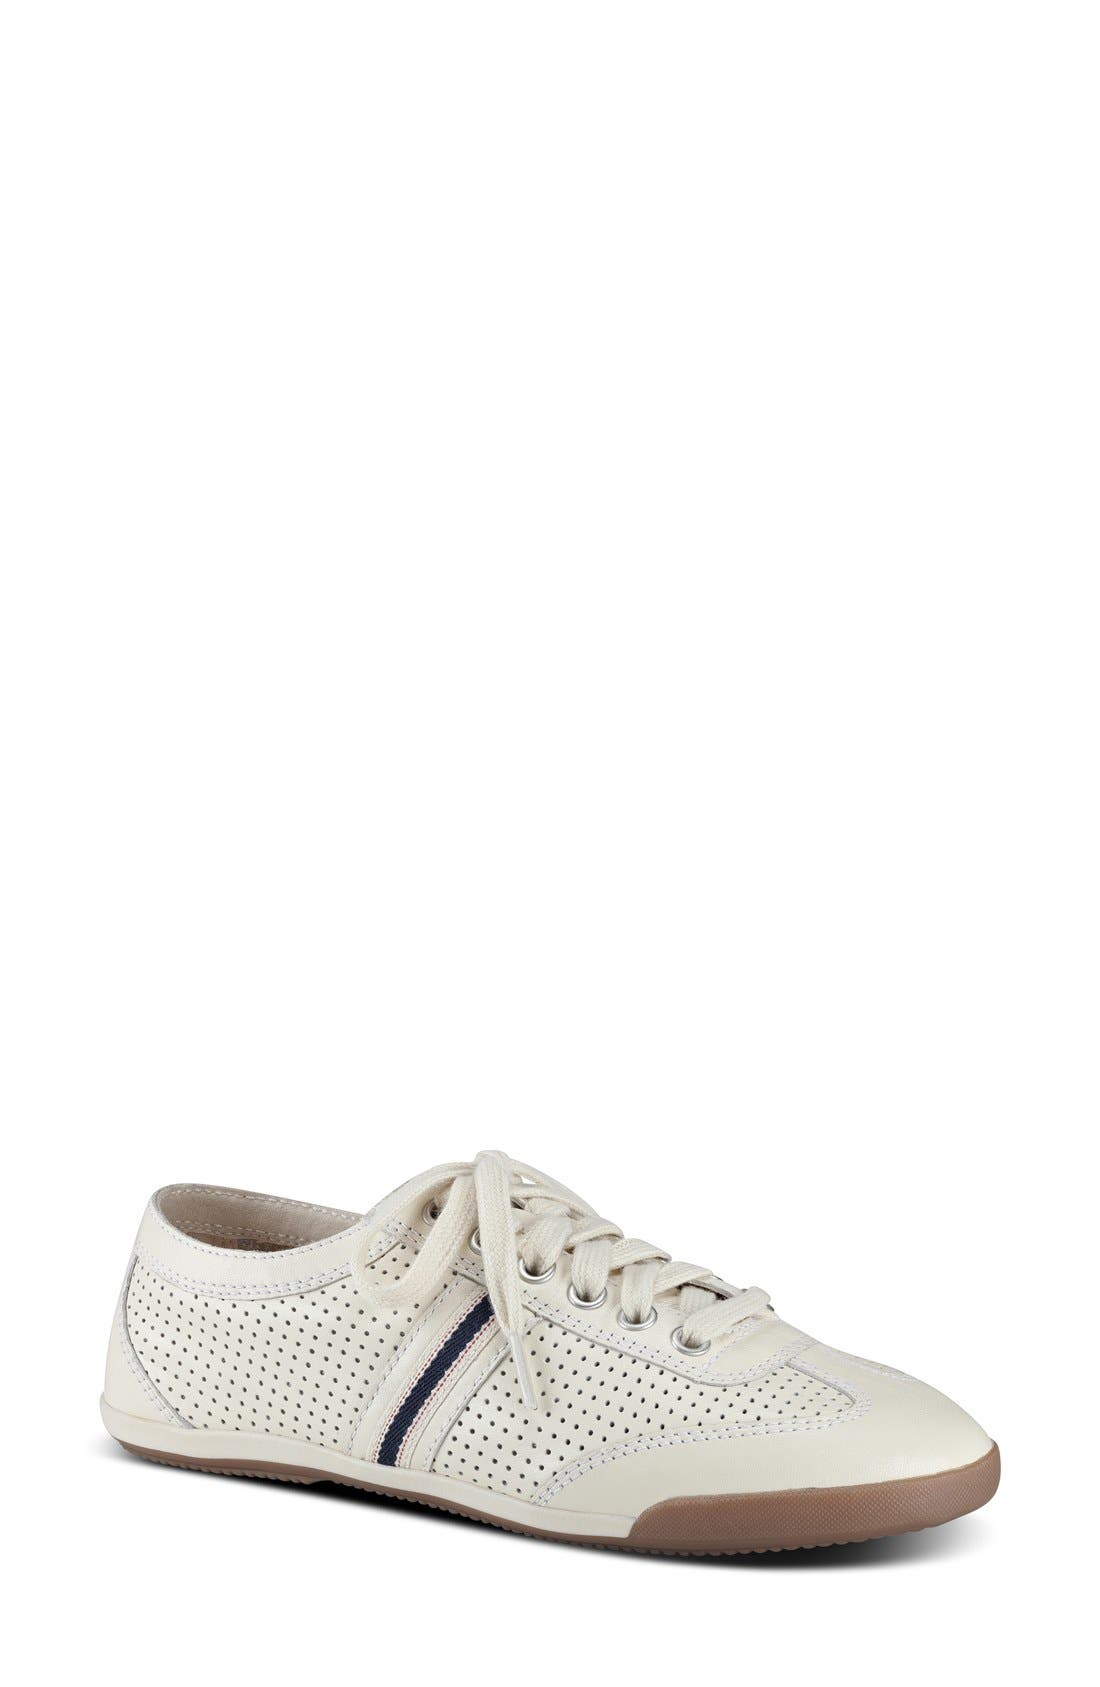 Alternate Image 1 Selected - ED Ellen DeGeneres 'Escondido' Sneaker (Women)